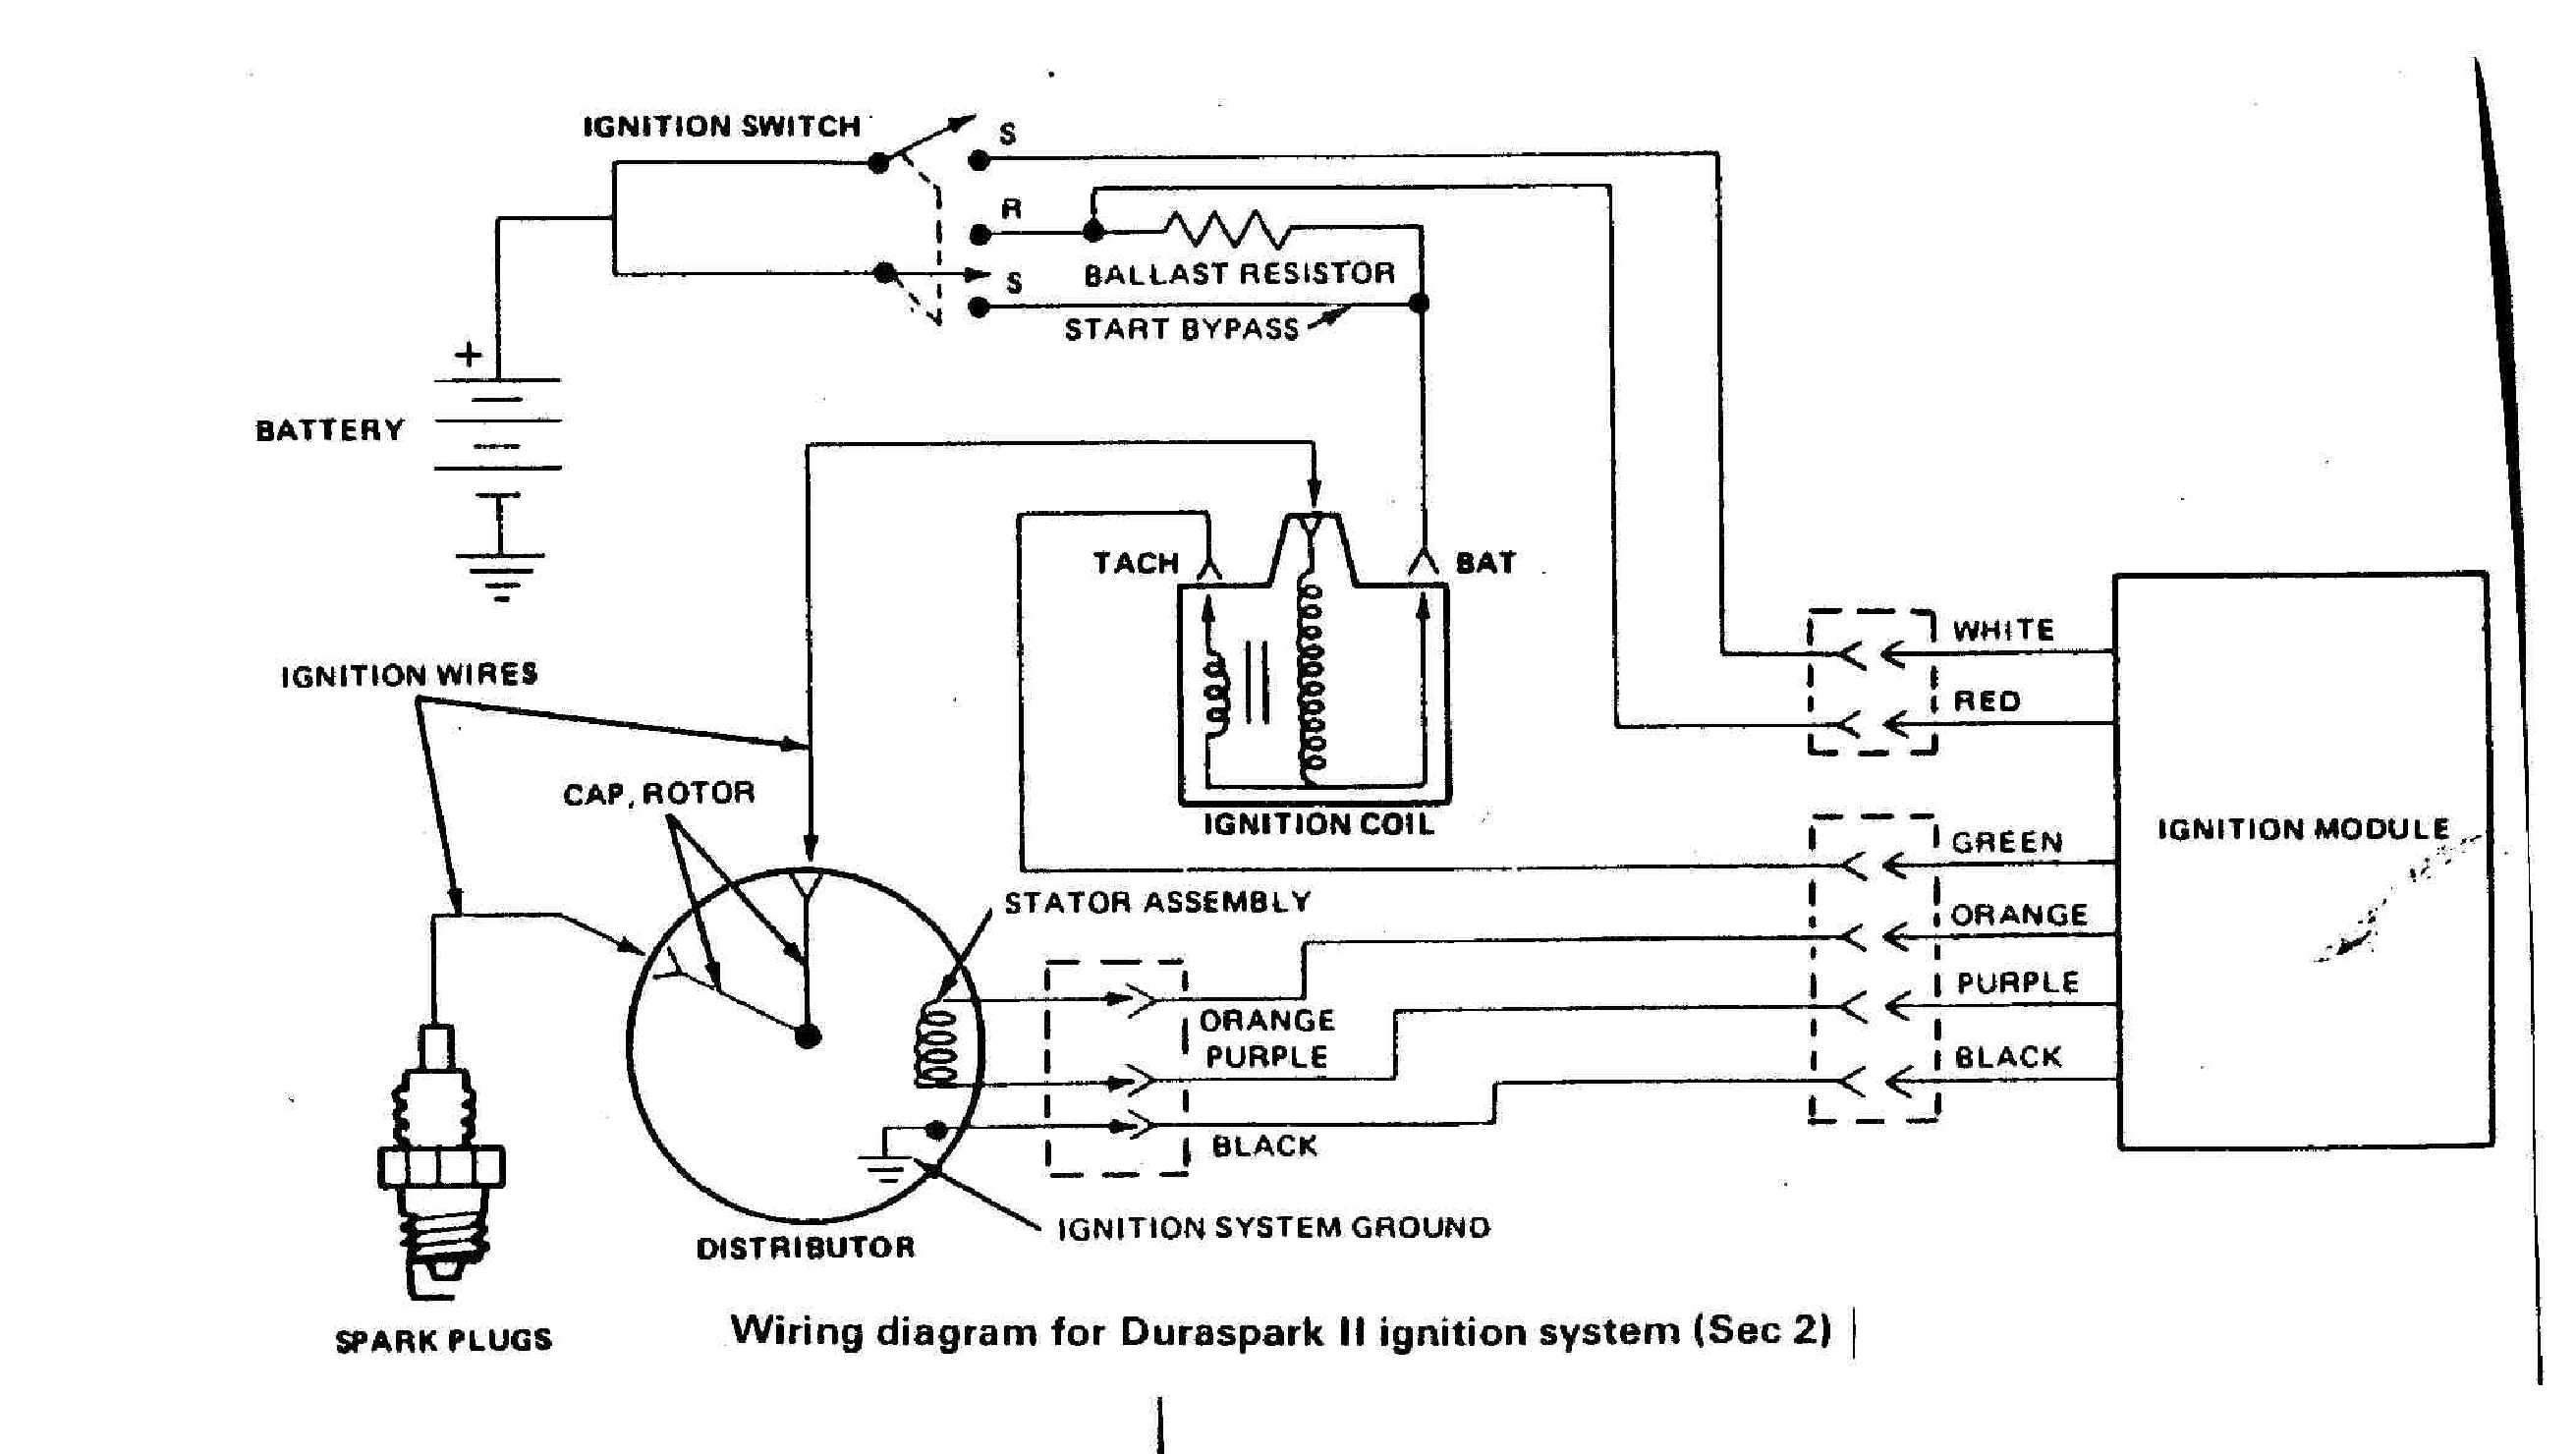 ford pinto wiring diagram wiring data rh unroutine co ford hei distributor wiring diagram ford v6 distributor wiring diagram